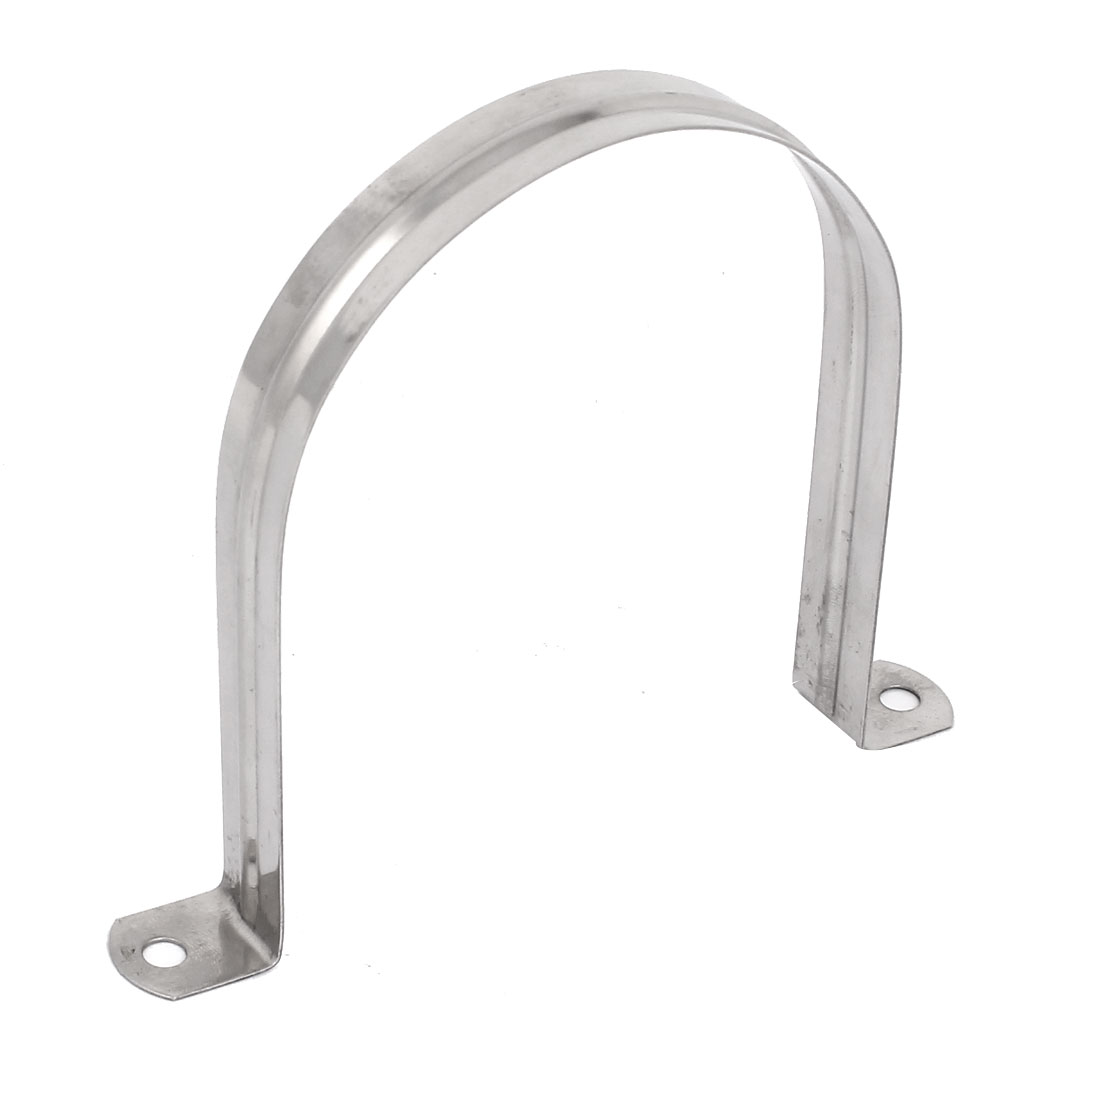 110mm Arch High Two Hole 304 Stainless Steel Pipe Strap Clips Fastener Holder